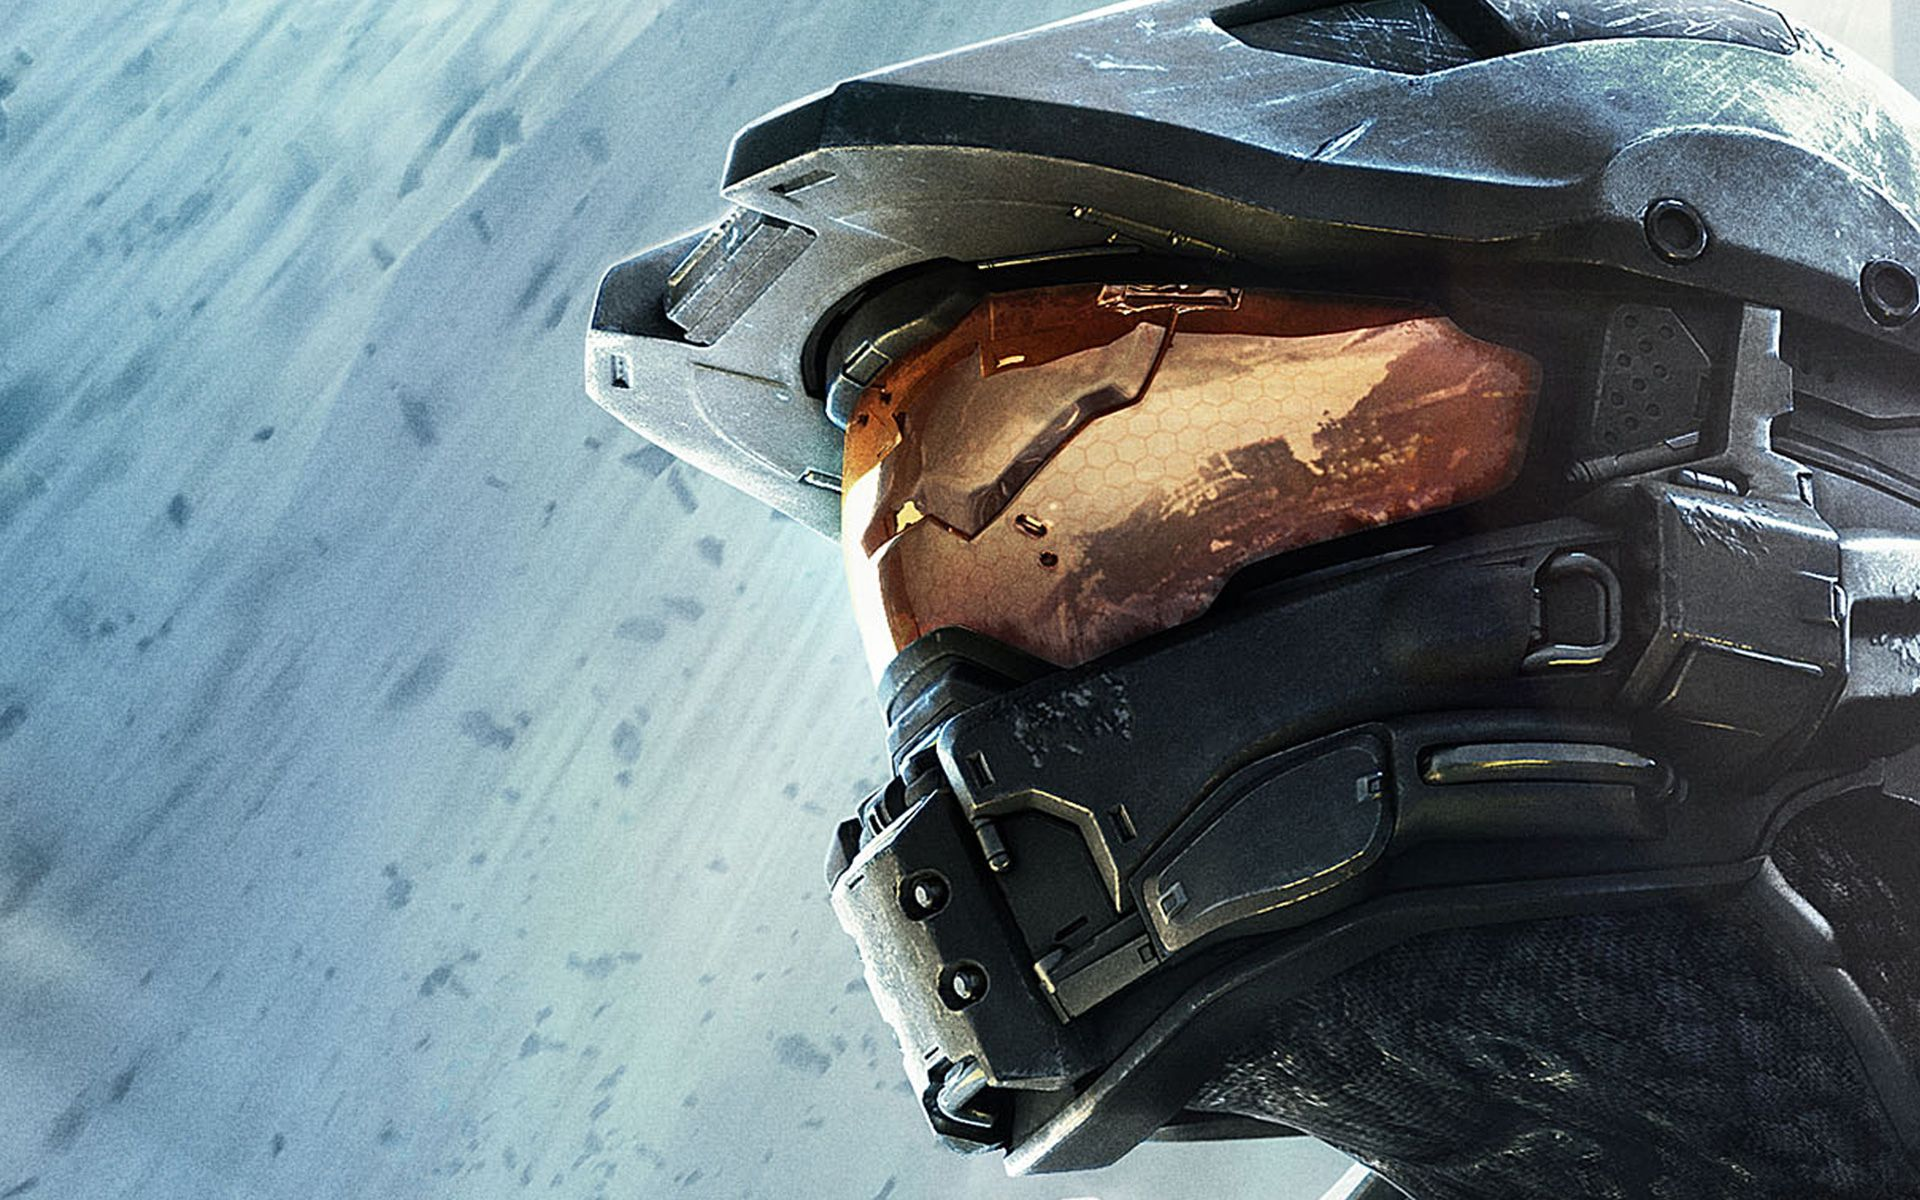 Master Chief Helmet You Can Get Halo 4 Master Chief Helmet For